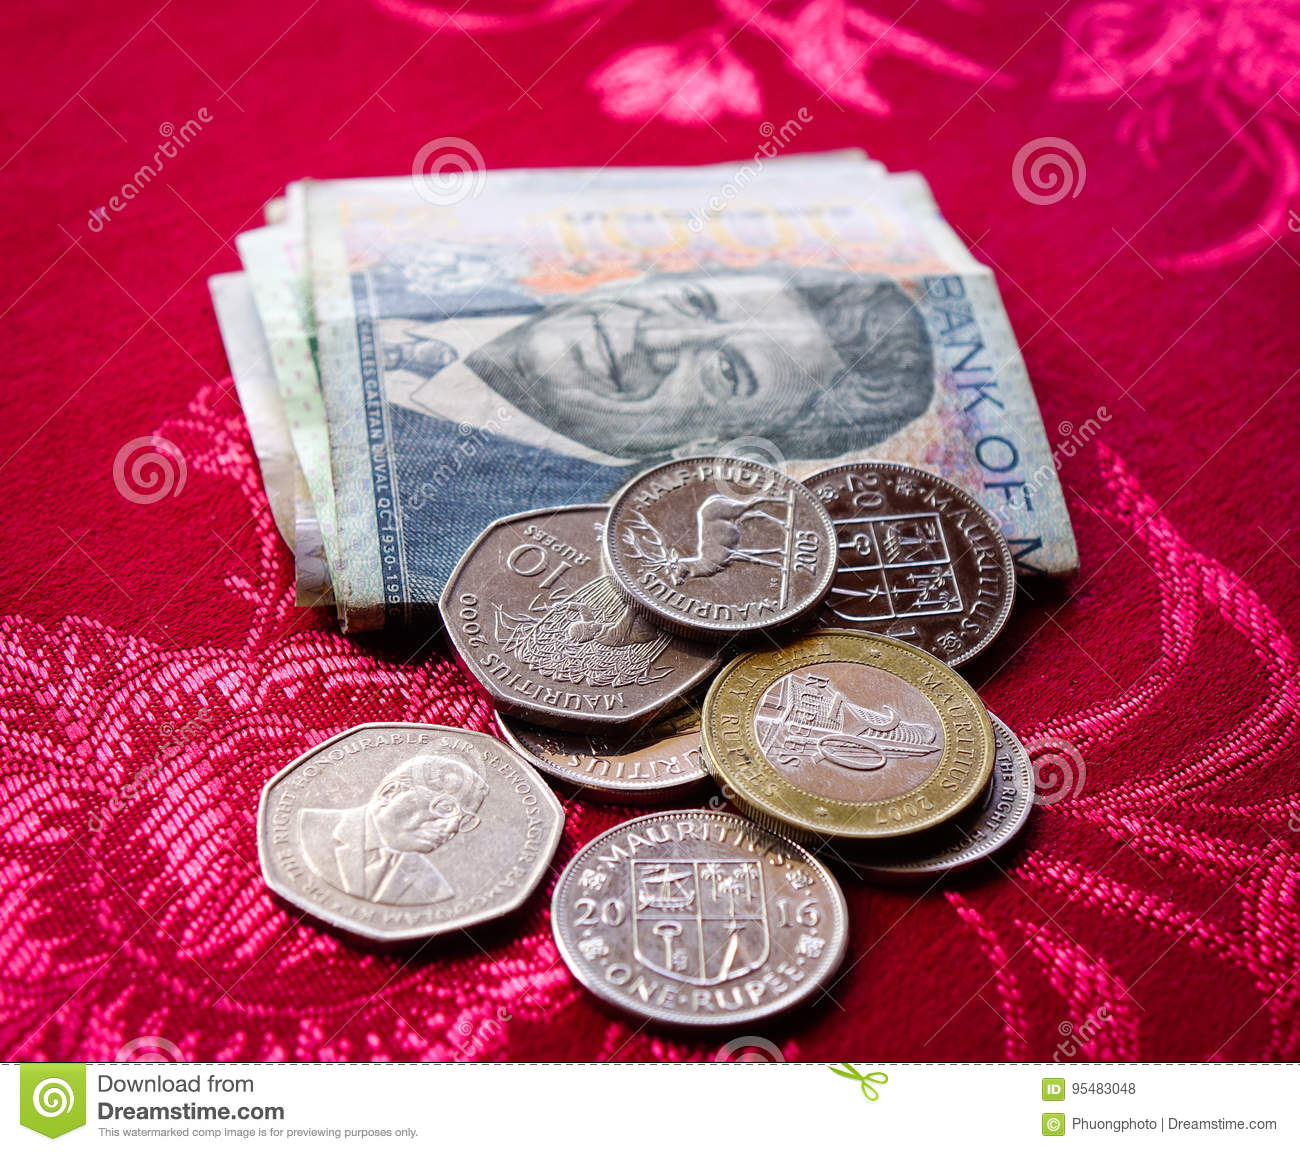 Mauritius Rupee Notes And Coins Stock Photo Image Of Background